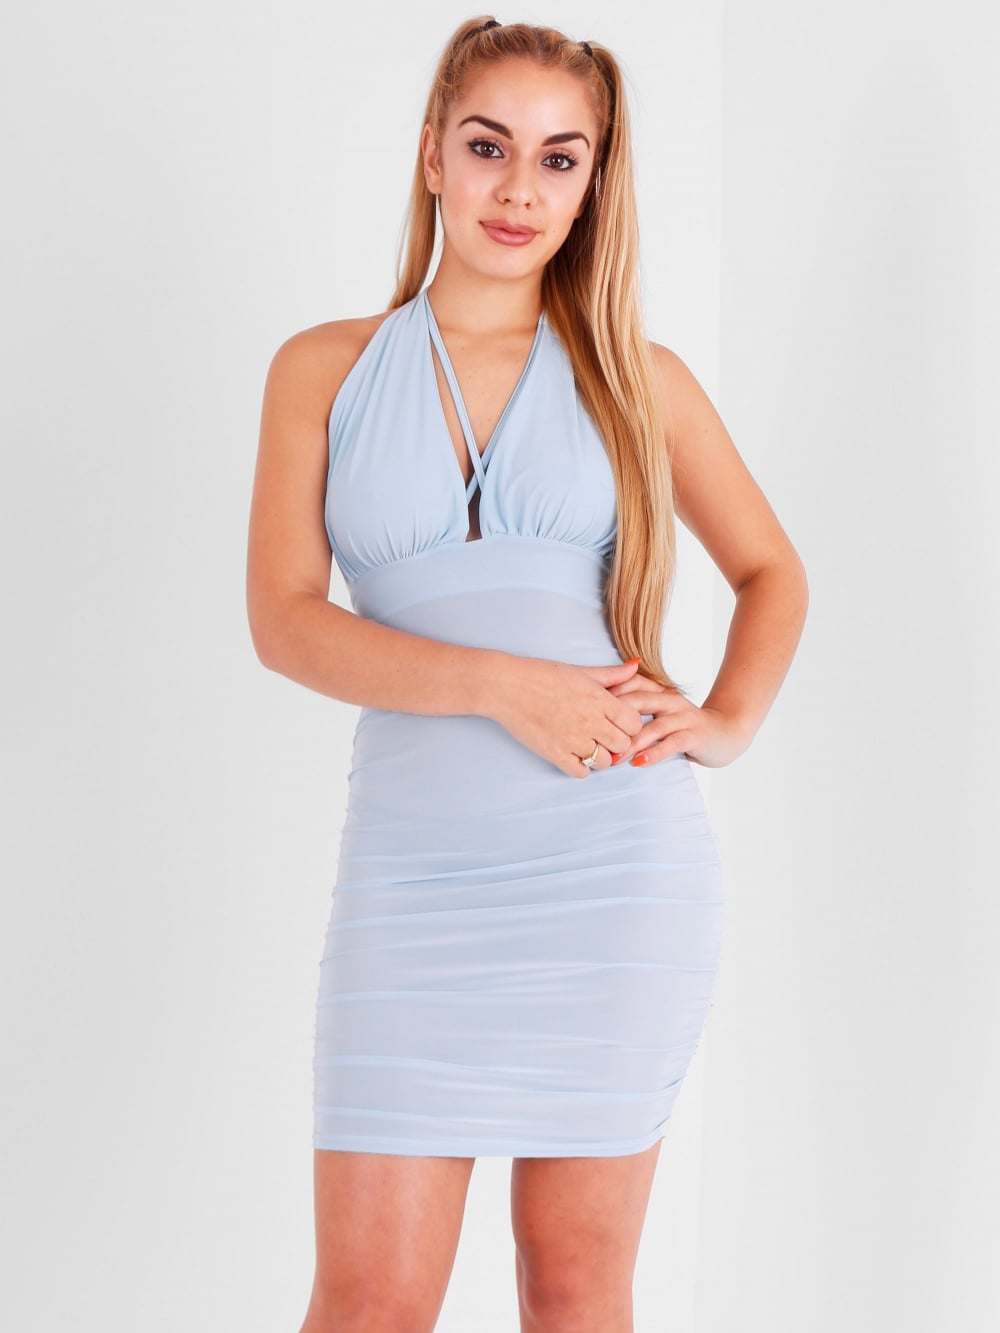 Strappy Halter Neck Backless Mini Dress - Inoxclothing